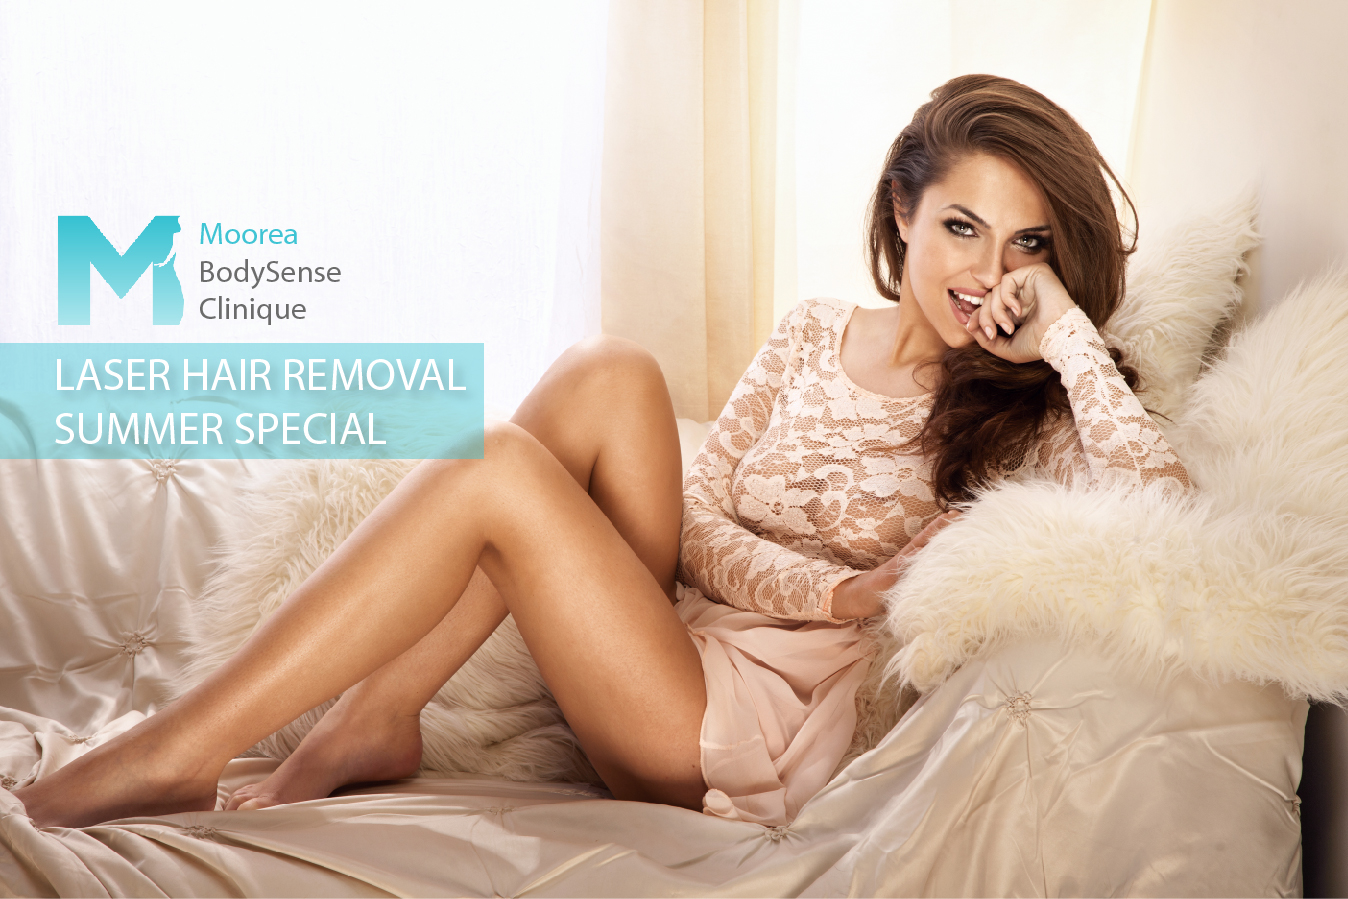 JULY LASER HAIR REMOVAL